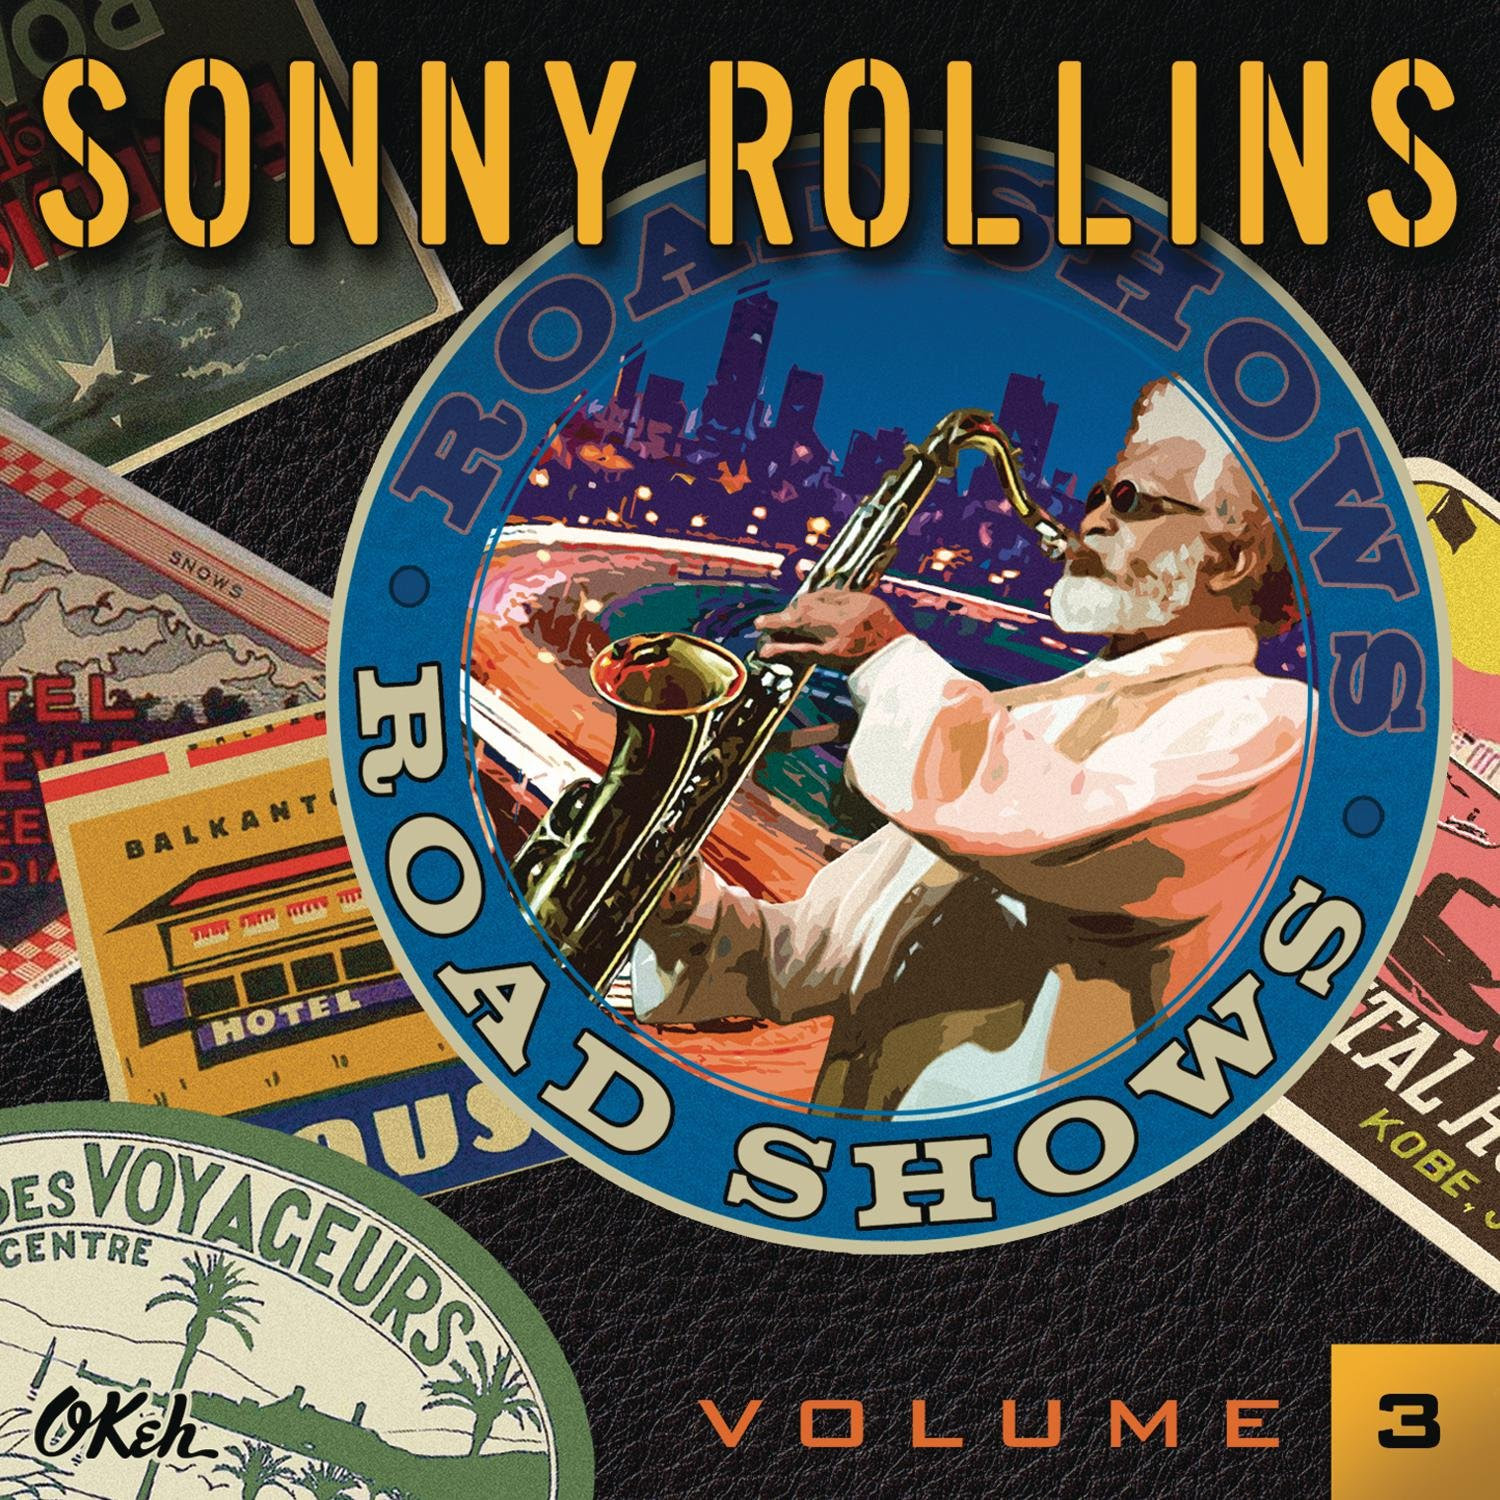 Sonny Rollins - Road Shows Vol 3 cover